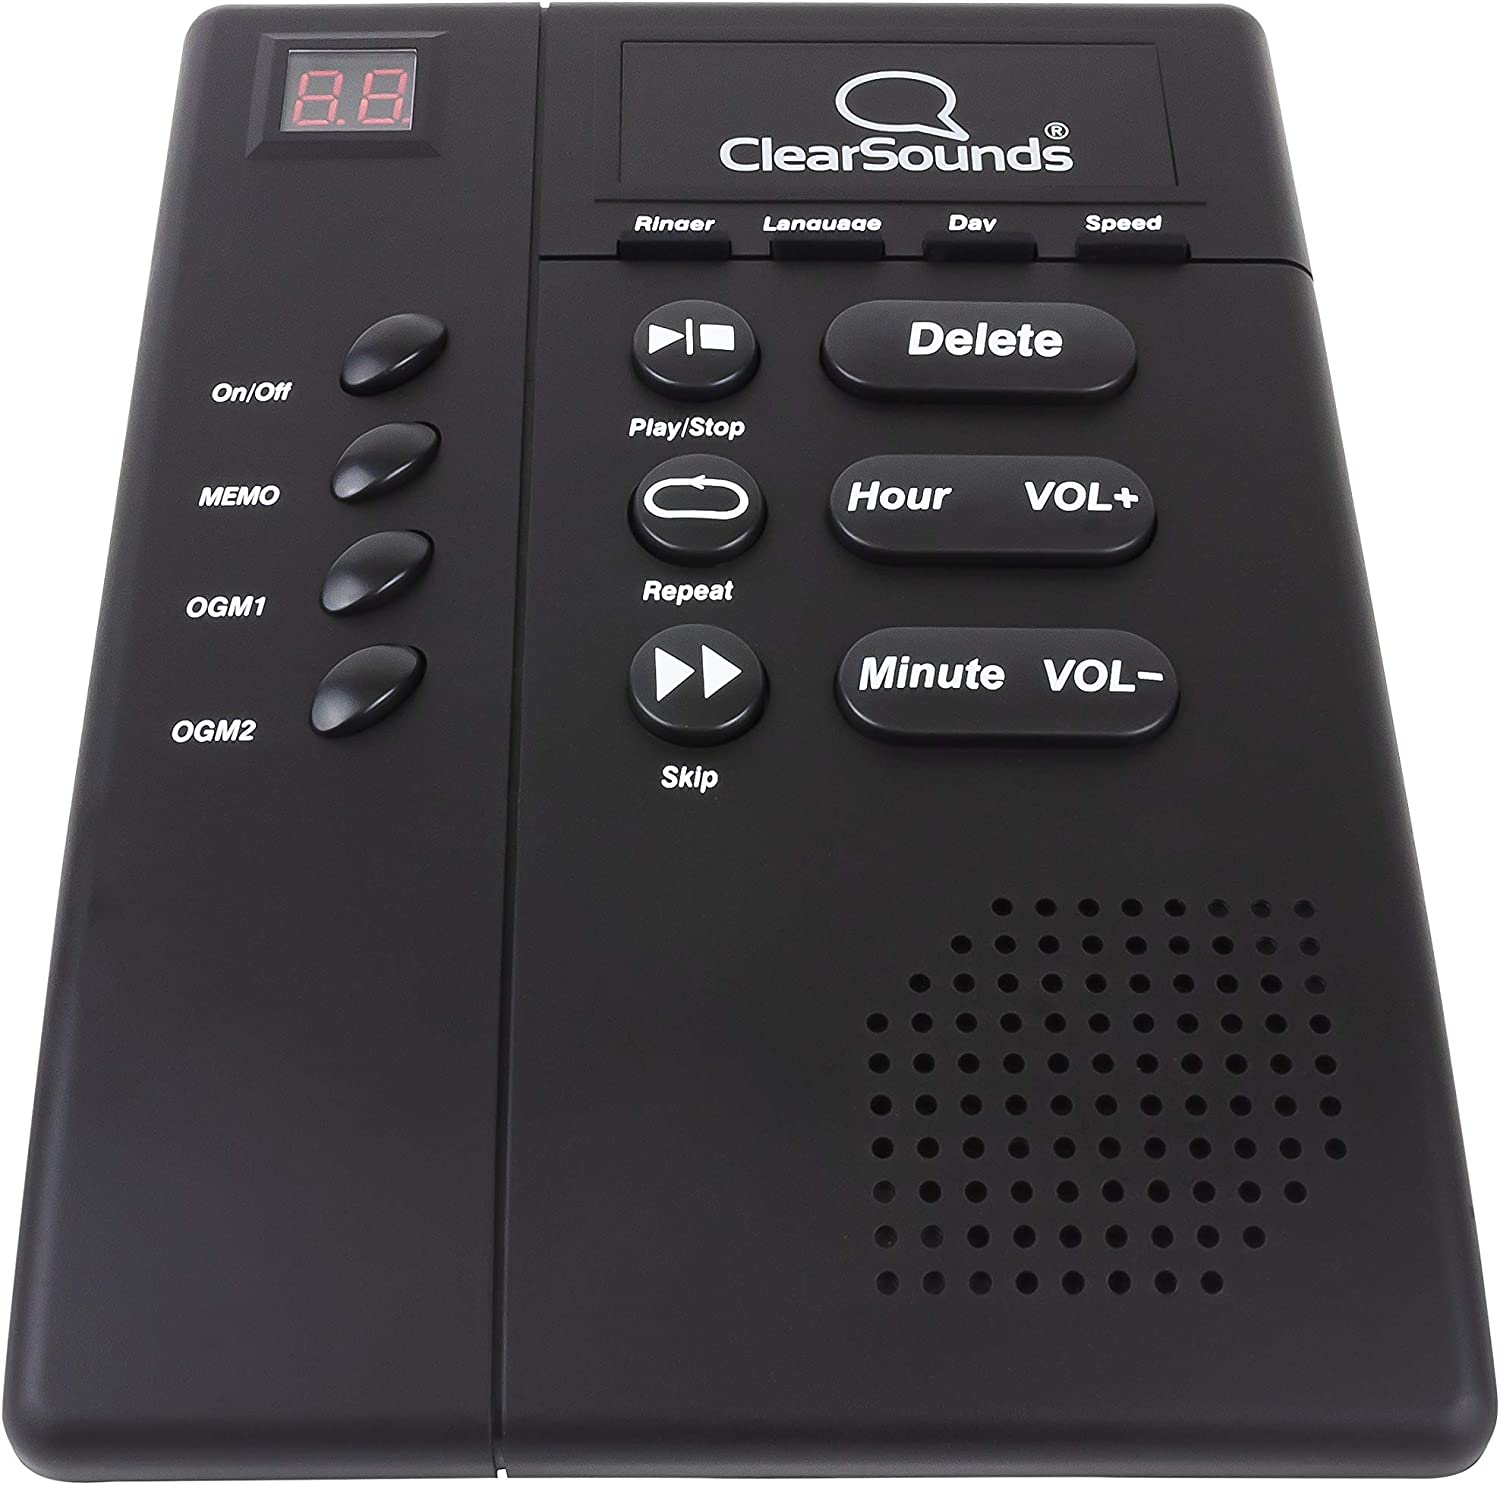 ClearSounds ANS3000 Amplified Answering Machine for Analog Telephones Landline with Up to 30dB Amplification : Health And Personal Care : Electronics